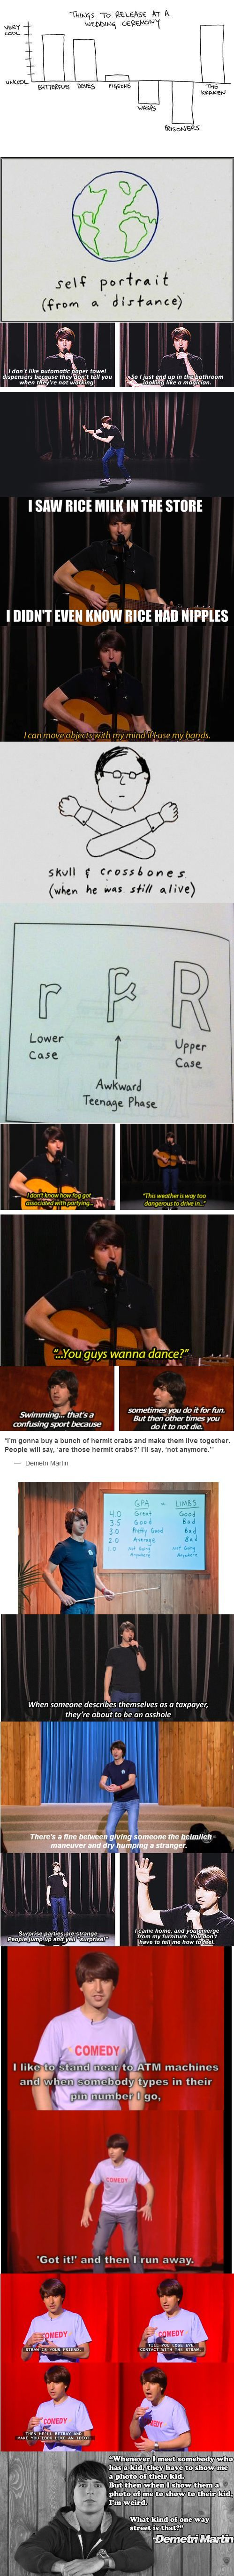 Demetri Martin: One of my all-time favorite comedians